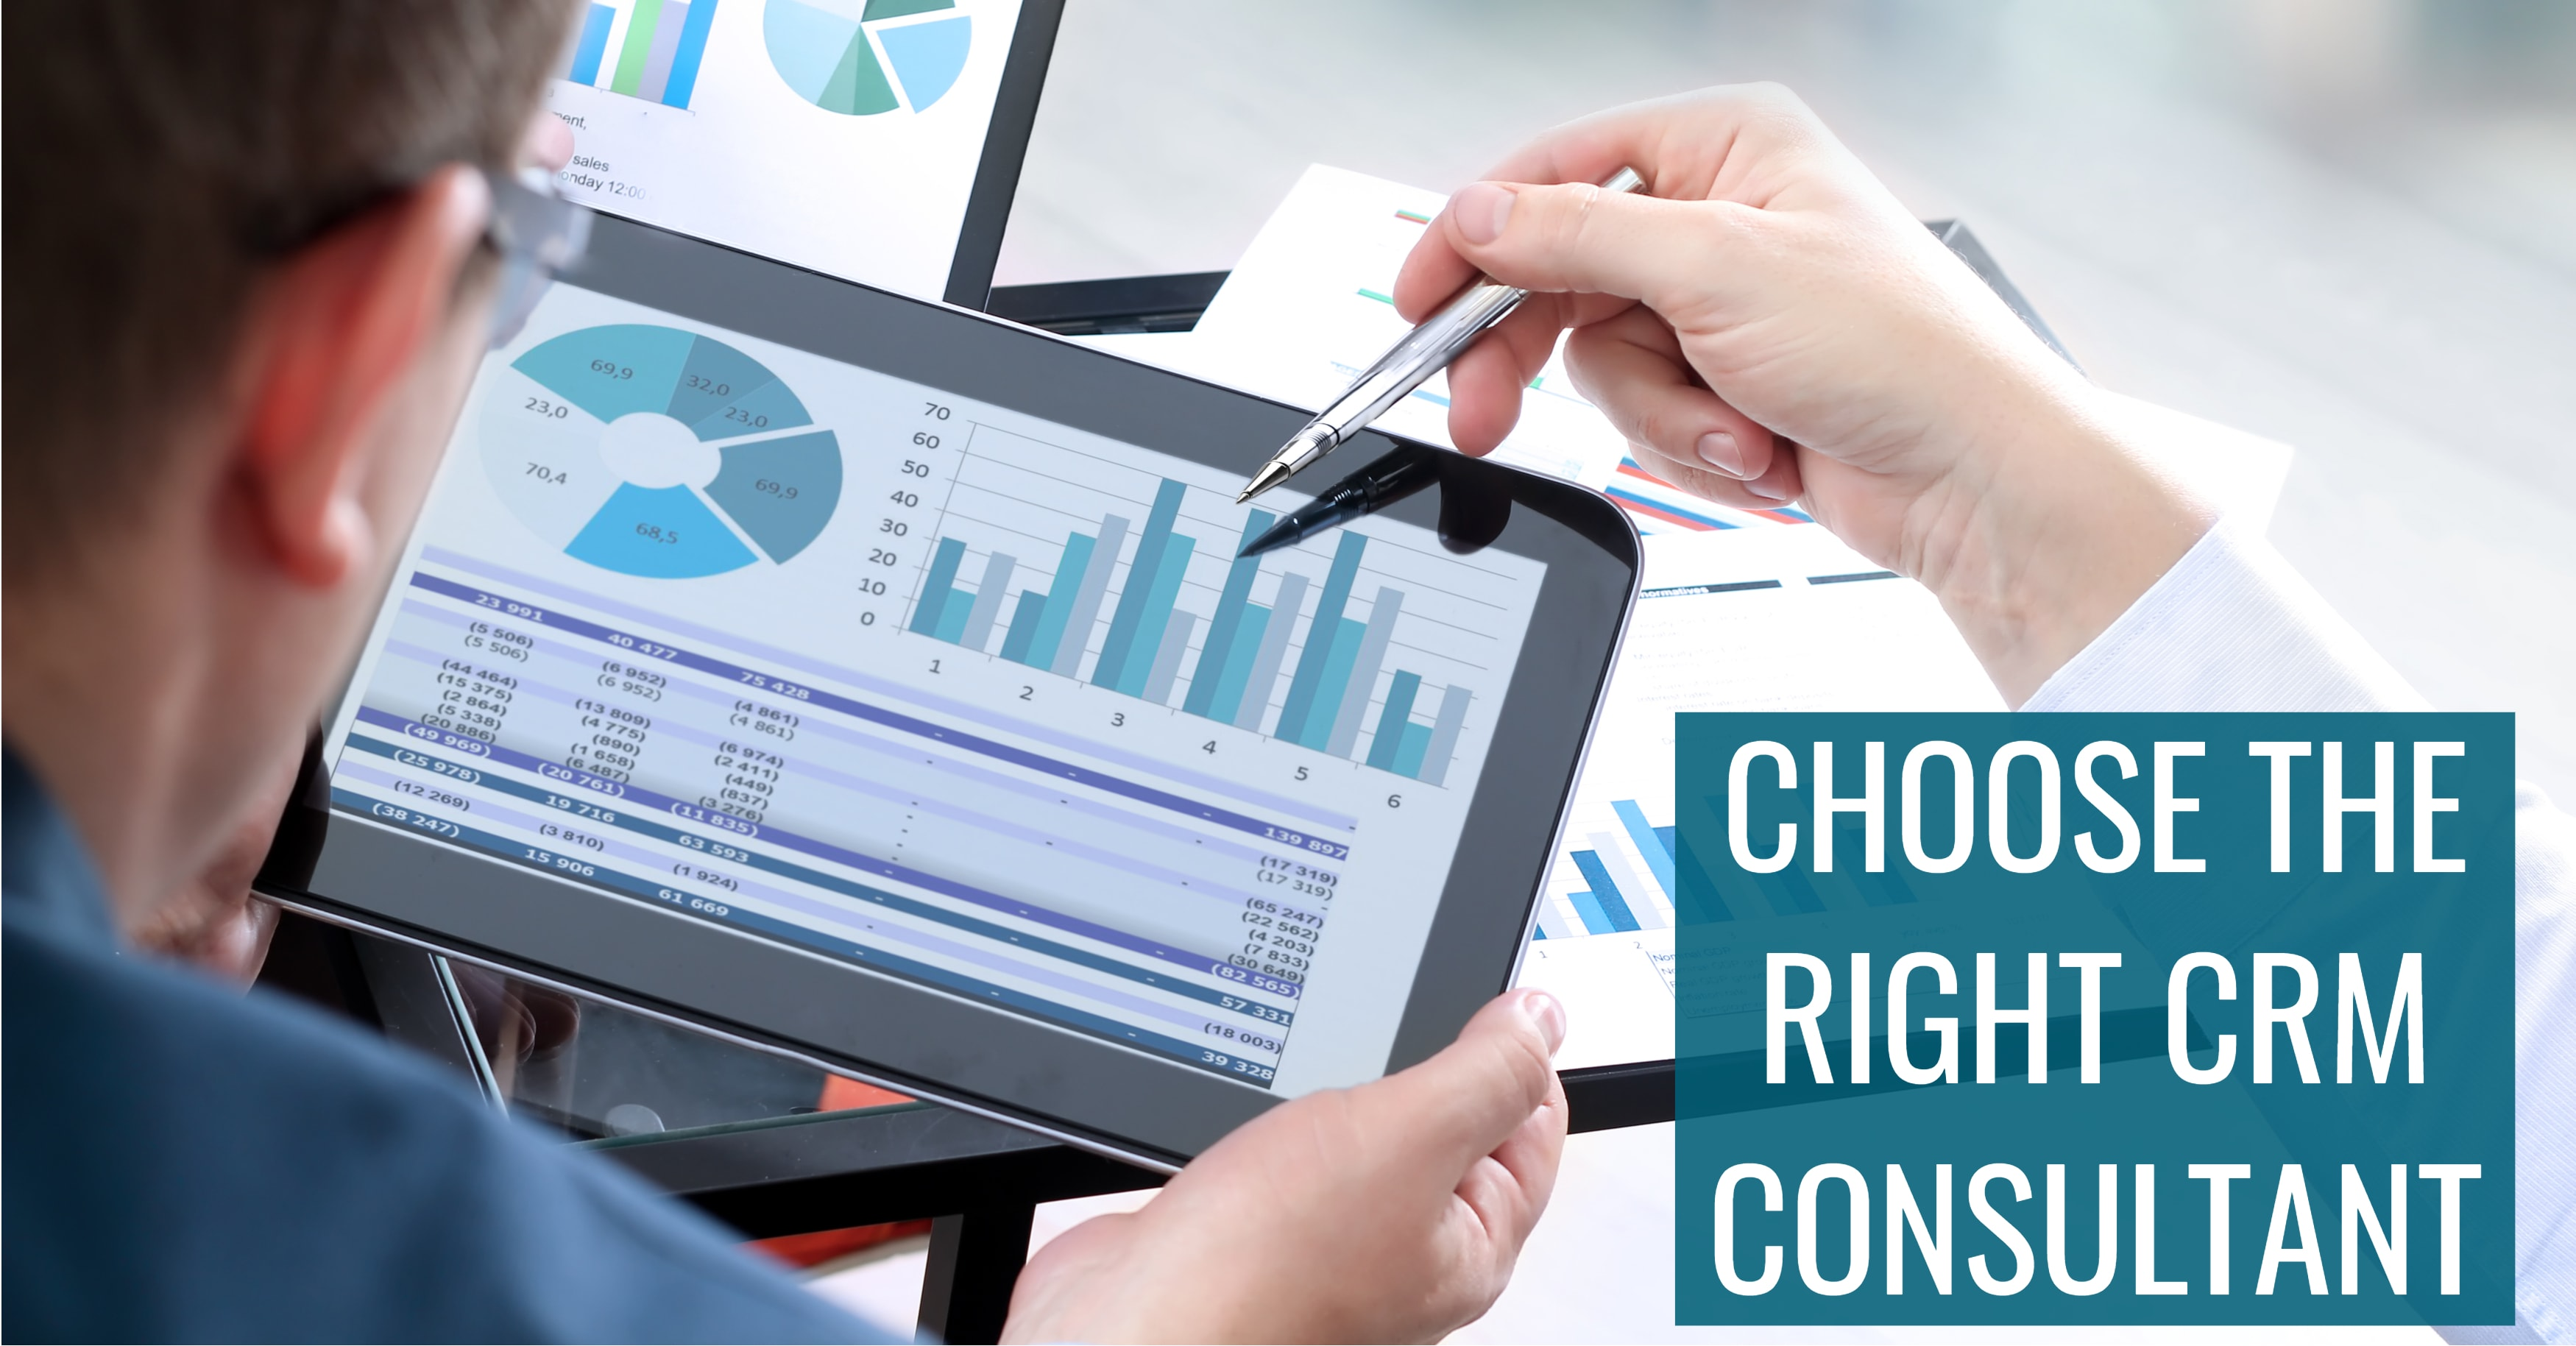 How to Choose the Right CRM Consultant